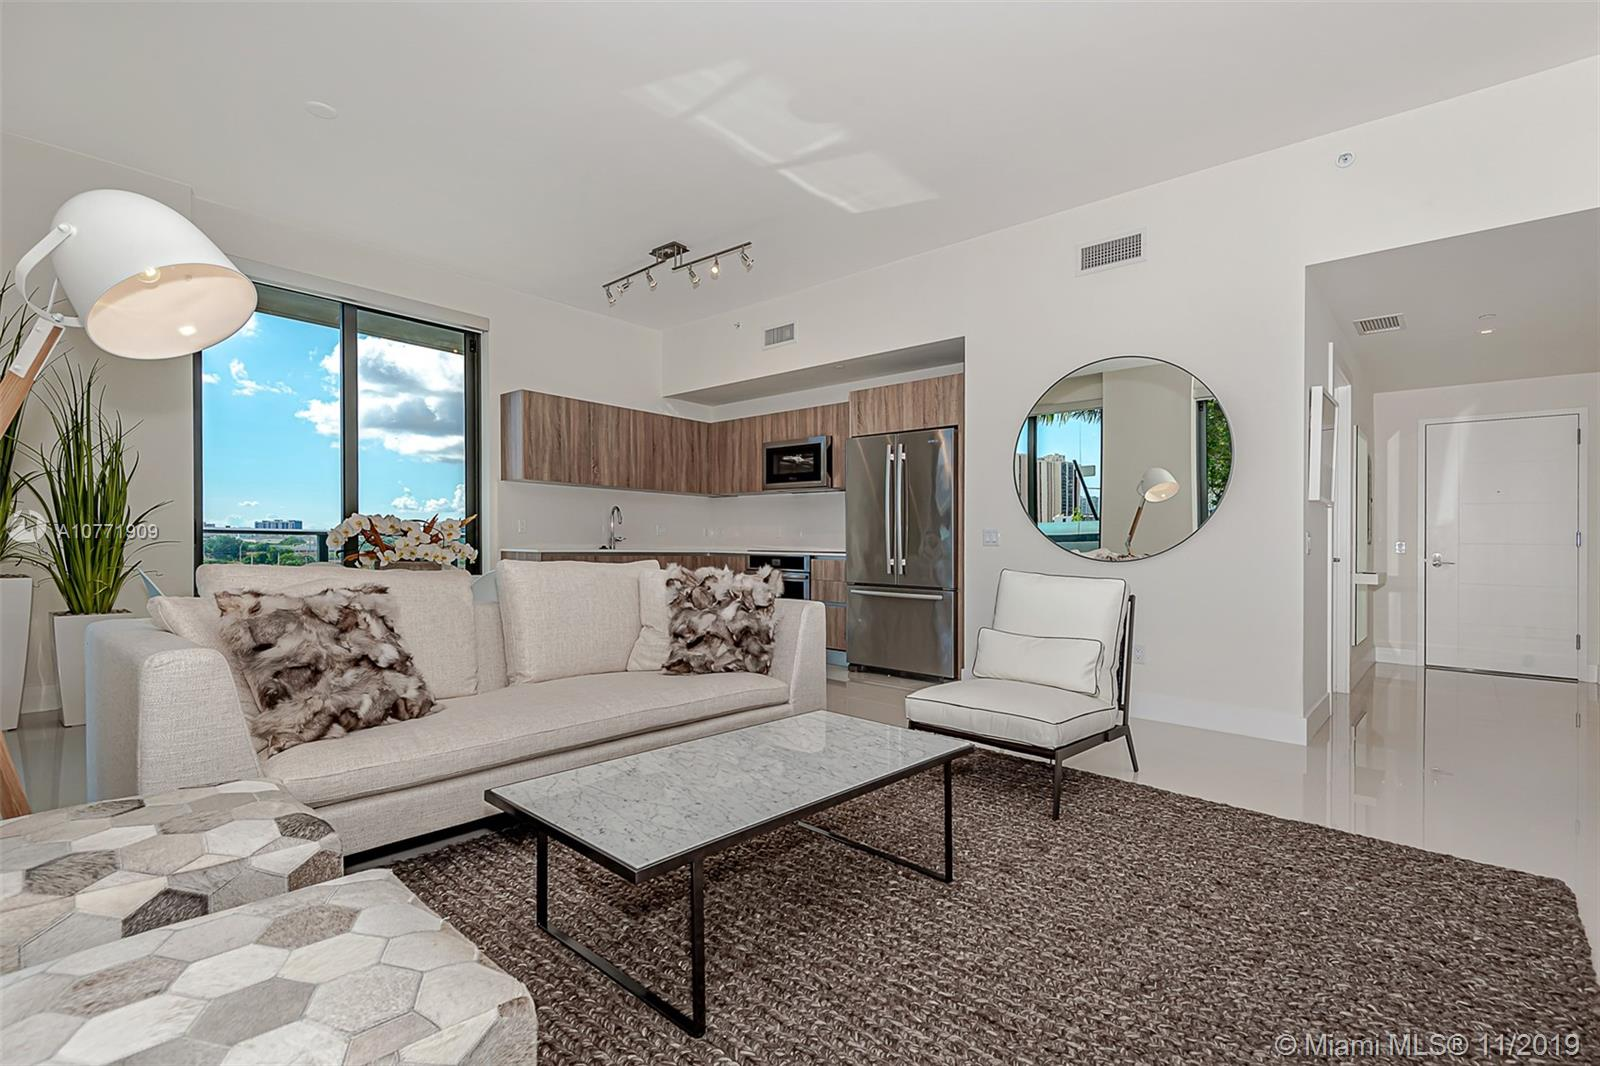 Most sought after 2 bedroom residence in the most coveted new development in Aventura. This is a corner pool facing Designer-Furnished Lanai residence with over 600 sqft of private outdoor space belonging to the residence. Build your own outdoor kitchen or create a private oasis for your pleasure! There are only 3 pool side Lanai residences in the building and only this one is for sale. Aventura ParkSquare is where the energy and and excitement of city life merges with the absolute convenience of living in a mixed use property. Reduce the time you spend in traffic and increase the time you spend enjoying your life! Casa D'Angelo, Bar Taco, Delicious Raw, Ono Poke, The Carrot, Barry's Bootcamp, Vana Laser Club, Armandeus Salon, Whole Foods, Promenade Shops and more... All in your back yard!